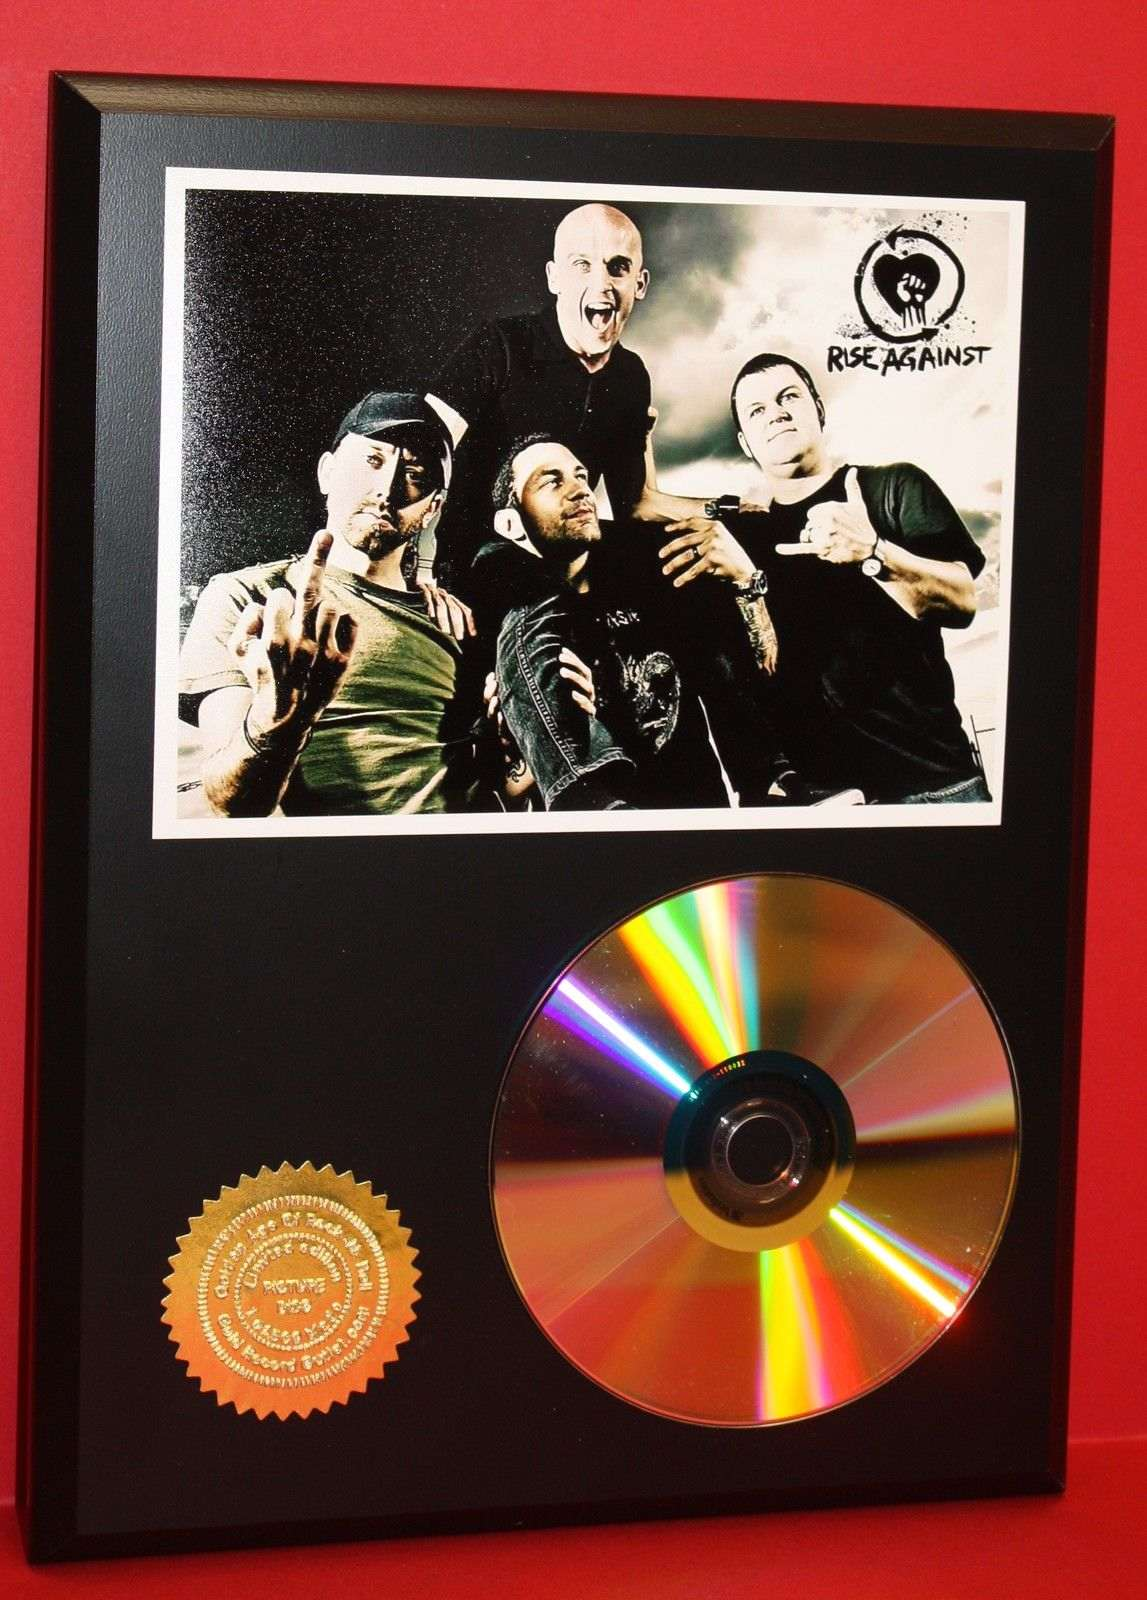 rise against punk 24kt gold cd disc collectible rare award quality plaque gift gold record. Black Bedroom Furniture Sets. Home Design Ideas